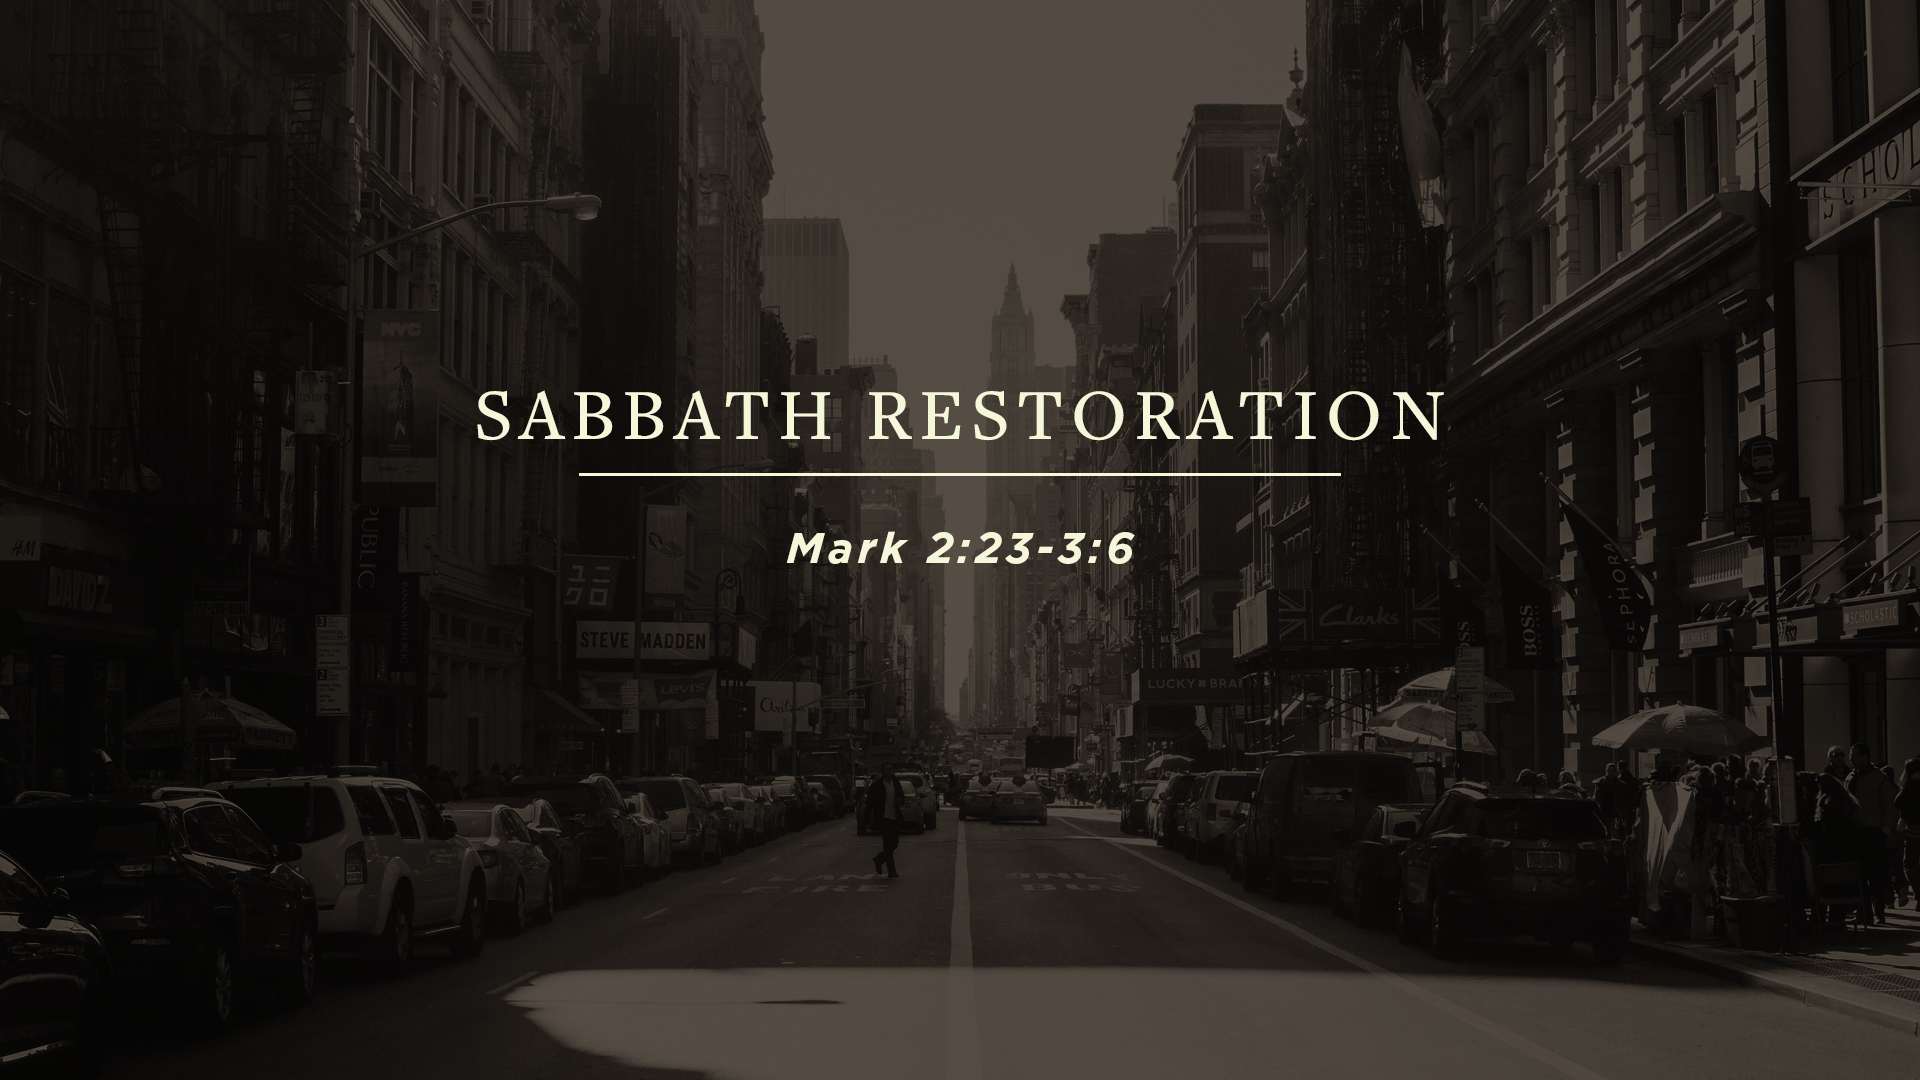 Sabbath Restoration